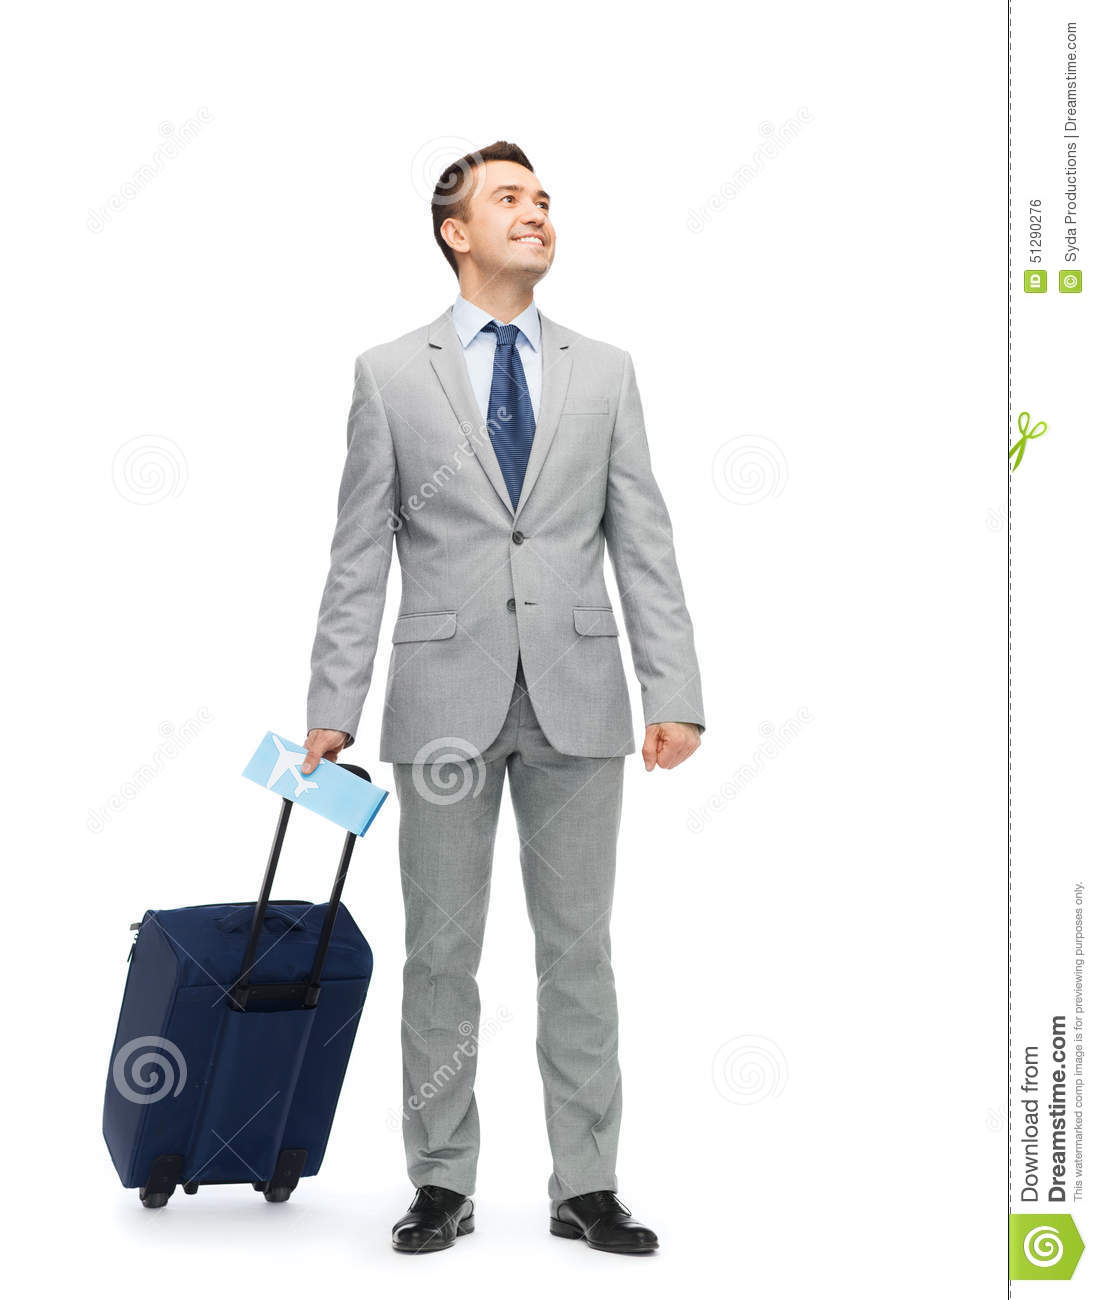 Suit Bag For Air Travel